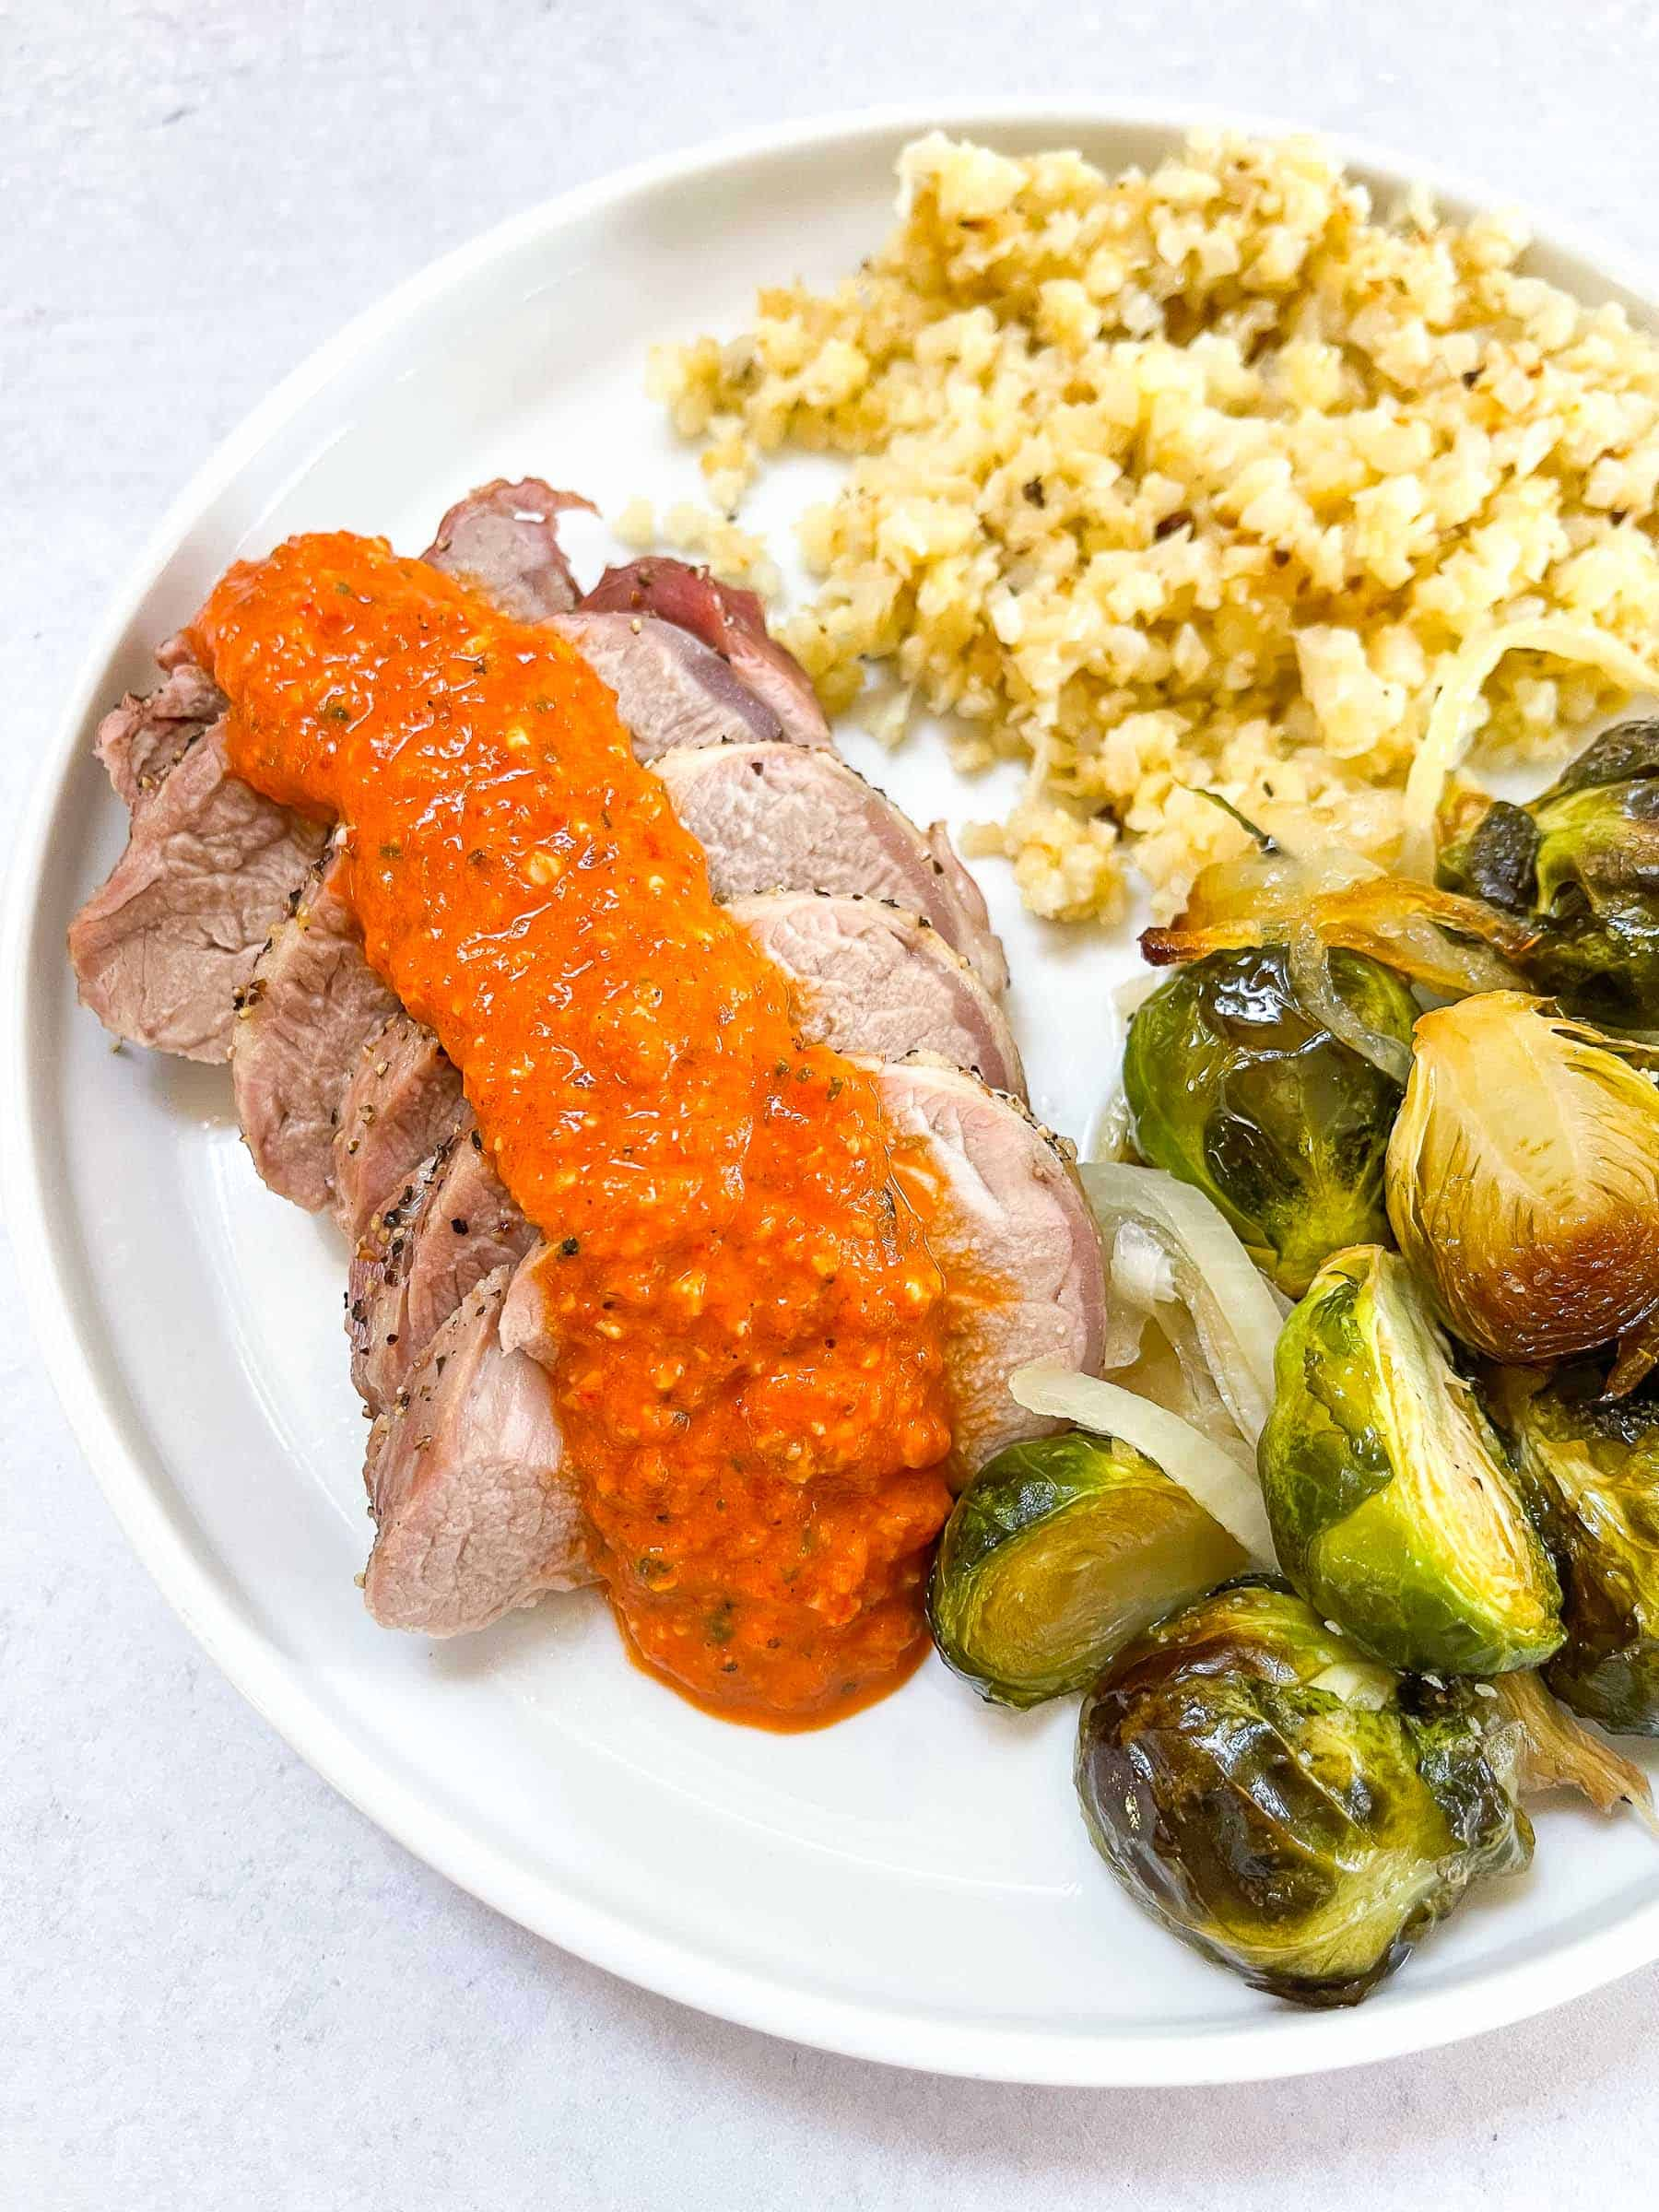 keto sheet pan pork tenderloin with romesco on a white plate with Brussel sprouts and cauliflower rice with a white background